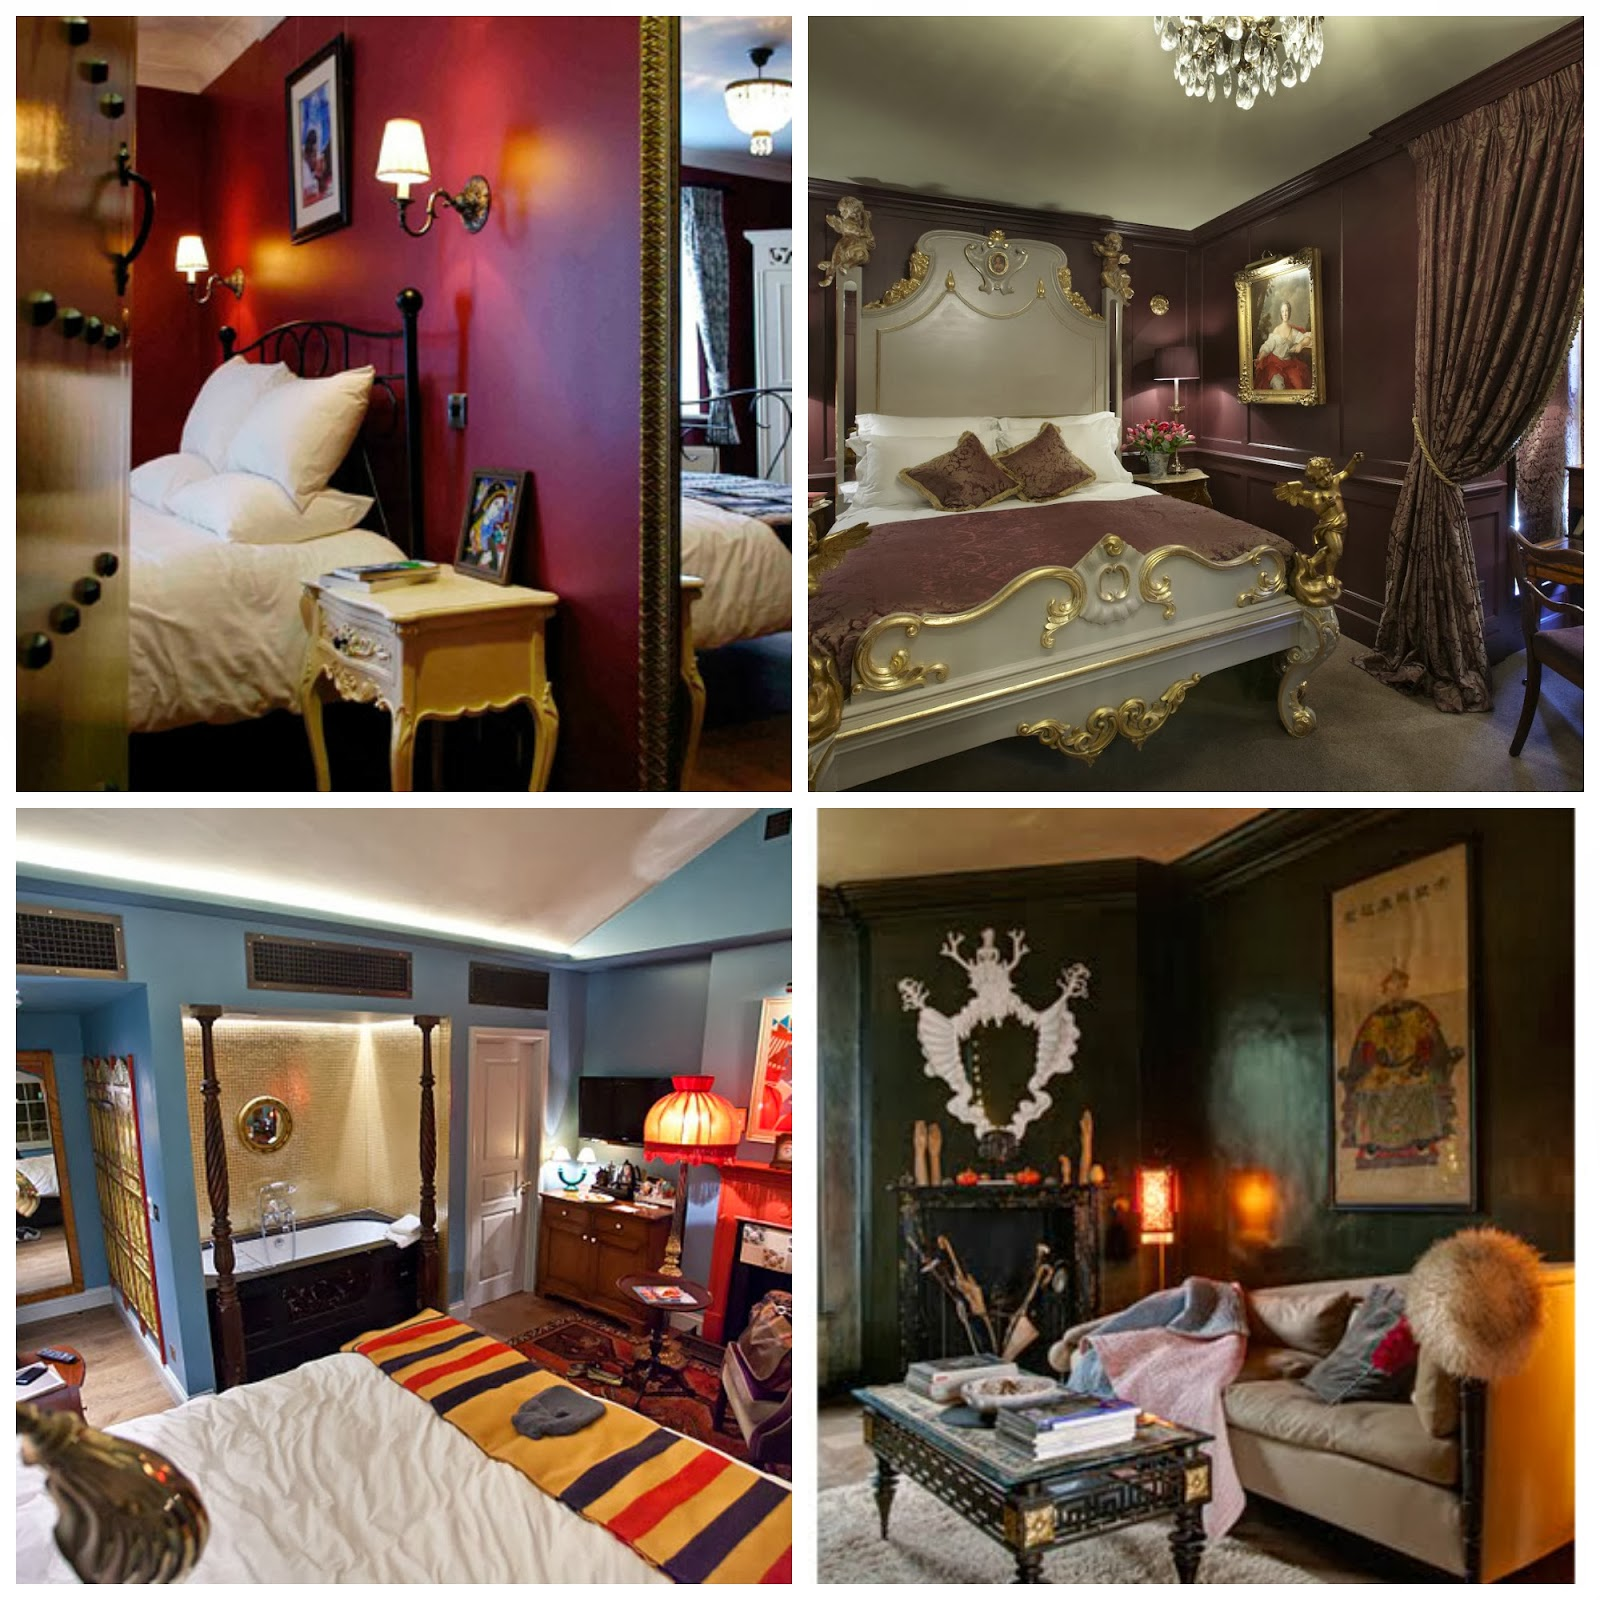 And Indeed Many Features Written About Its Offerings But Every Time I Stumble Across A List Of London S Boutique Hotels They Re Always High End Luxury